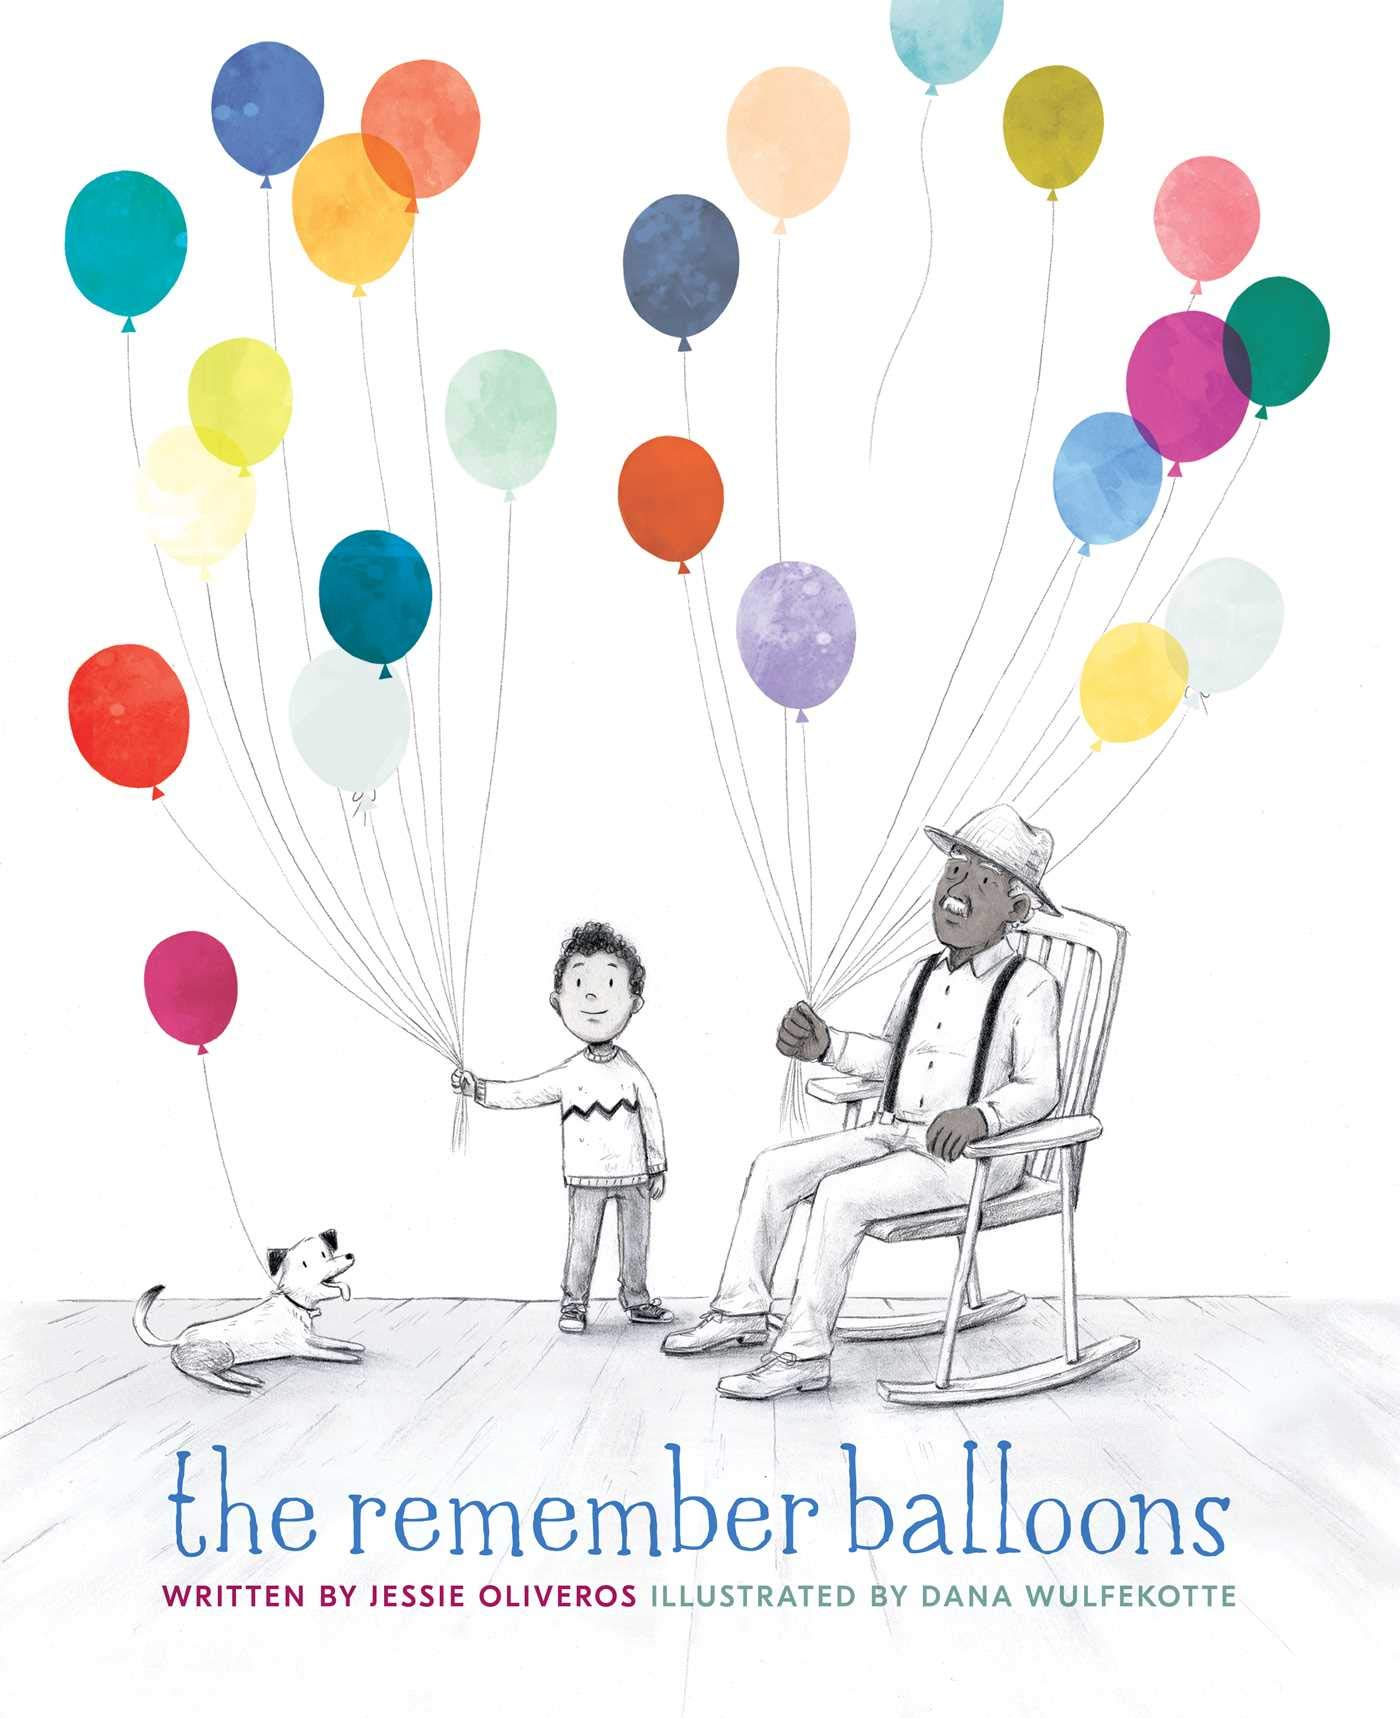 THE REMEMBER BALLOONS    by Jessie Oliveros